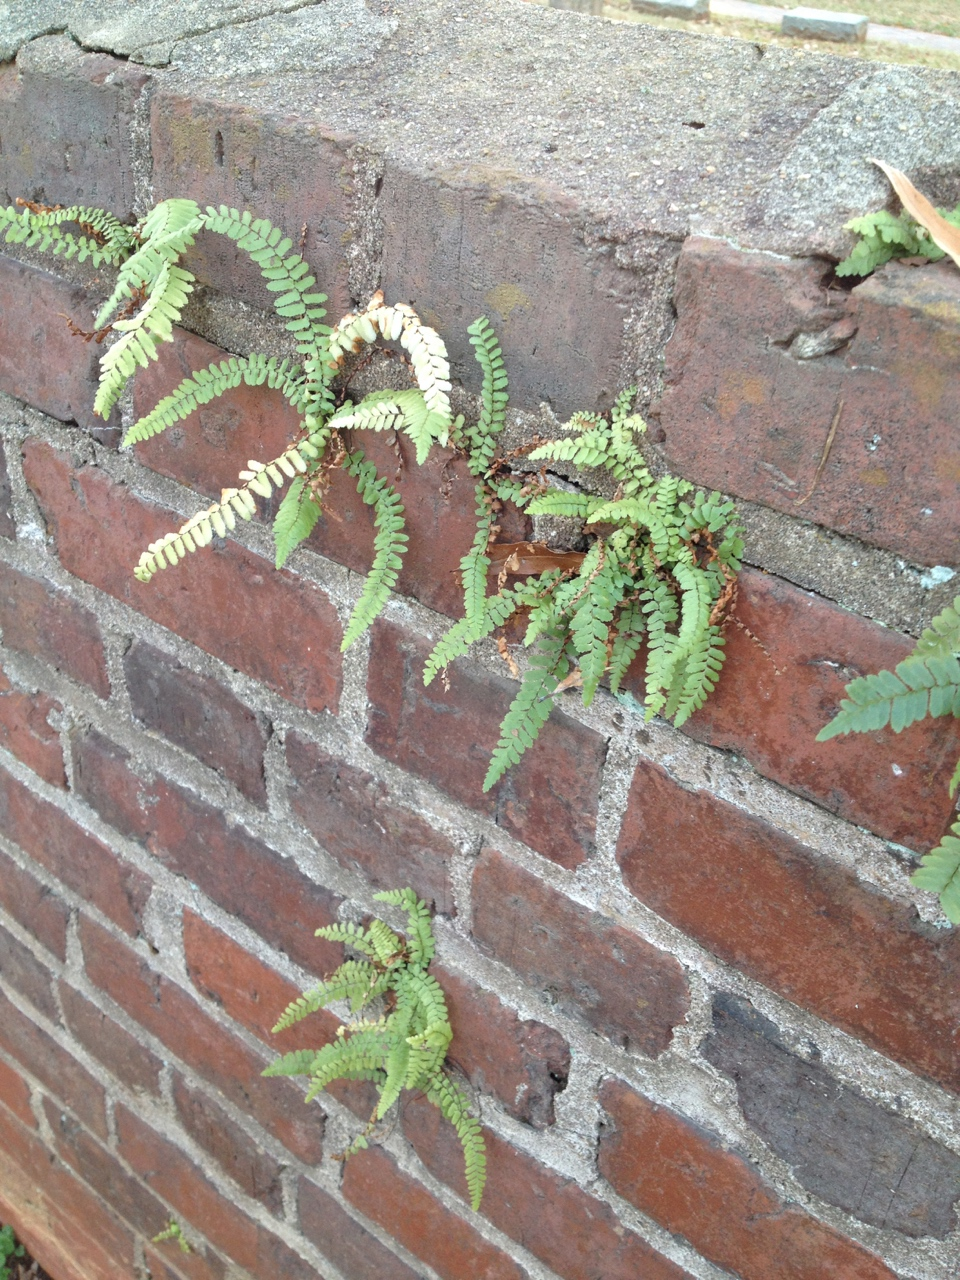 The Scientific Name is Asplenium platyneuron. You will likely hear them called Ebony spleenwort. This picture shows the Growing on a brick wall! of Asplenium platyneuron